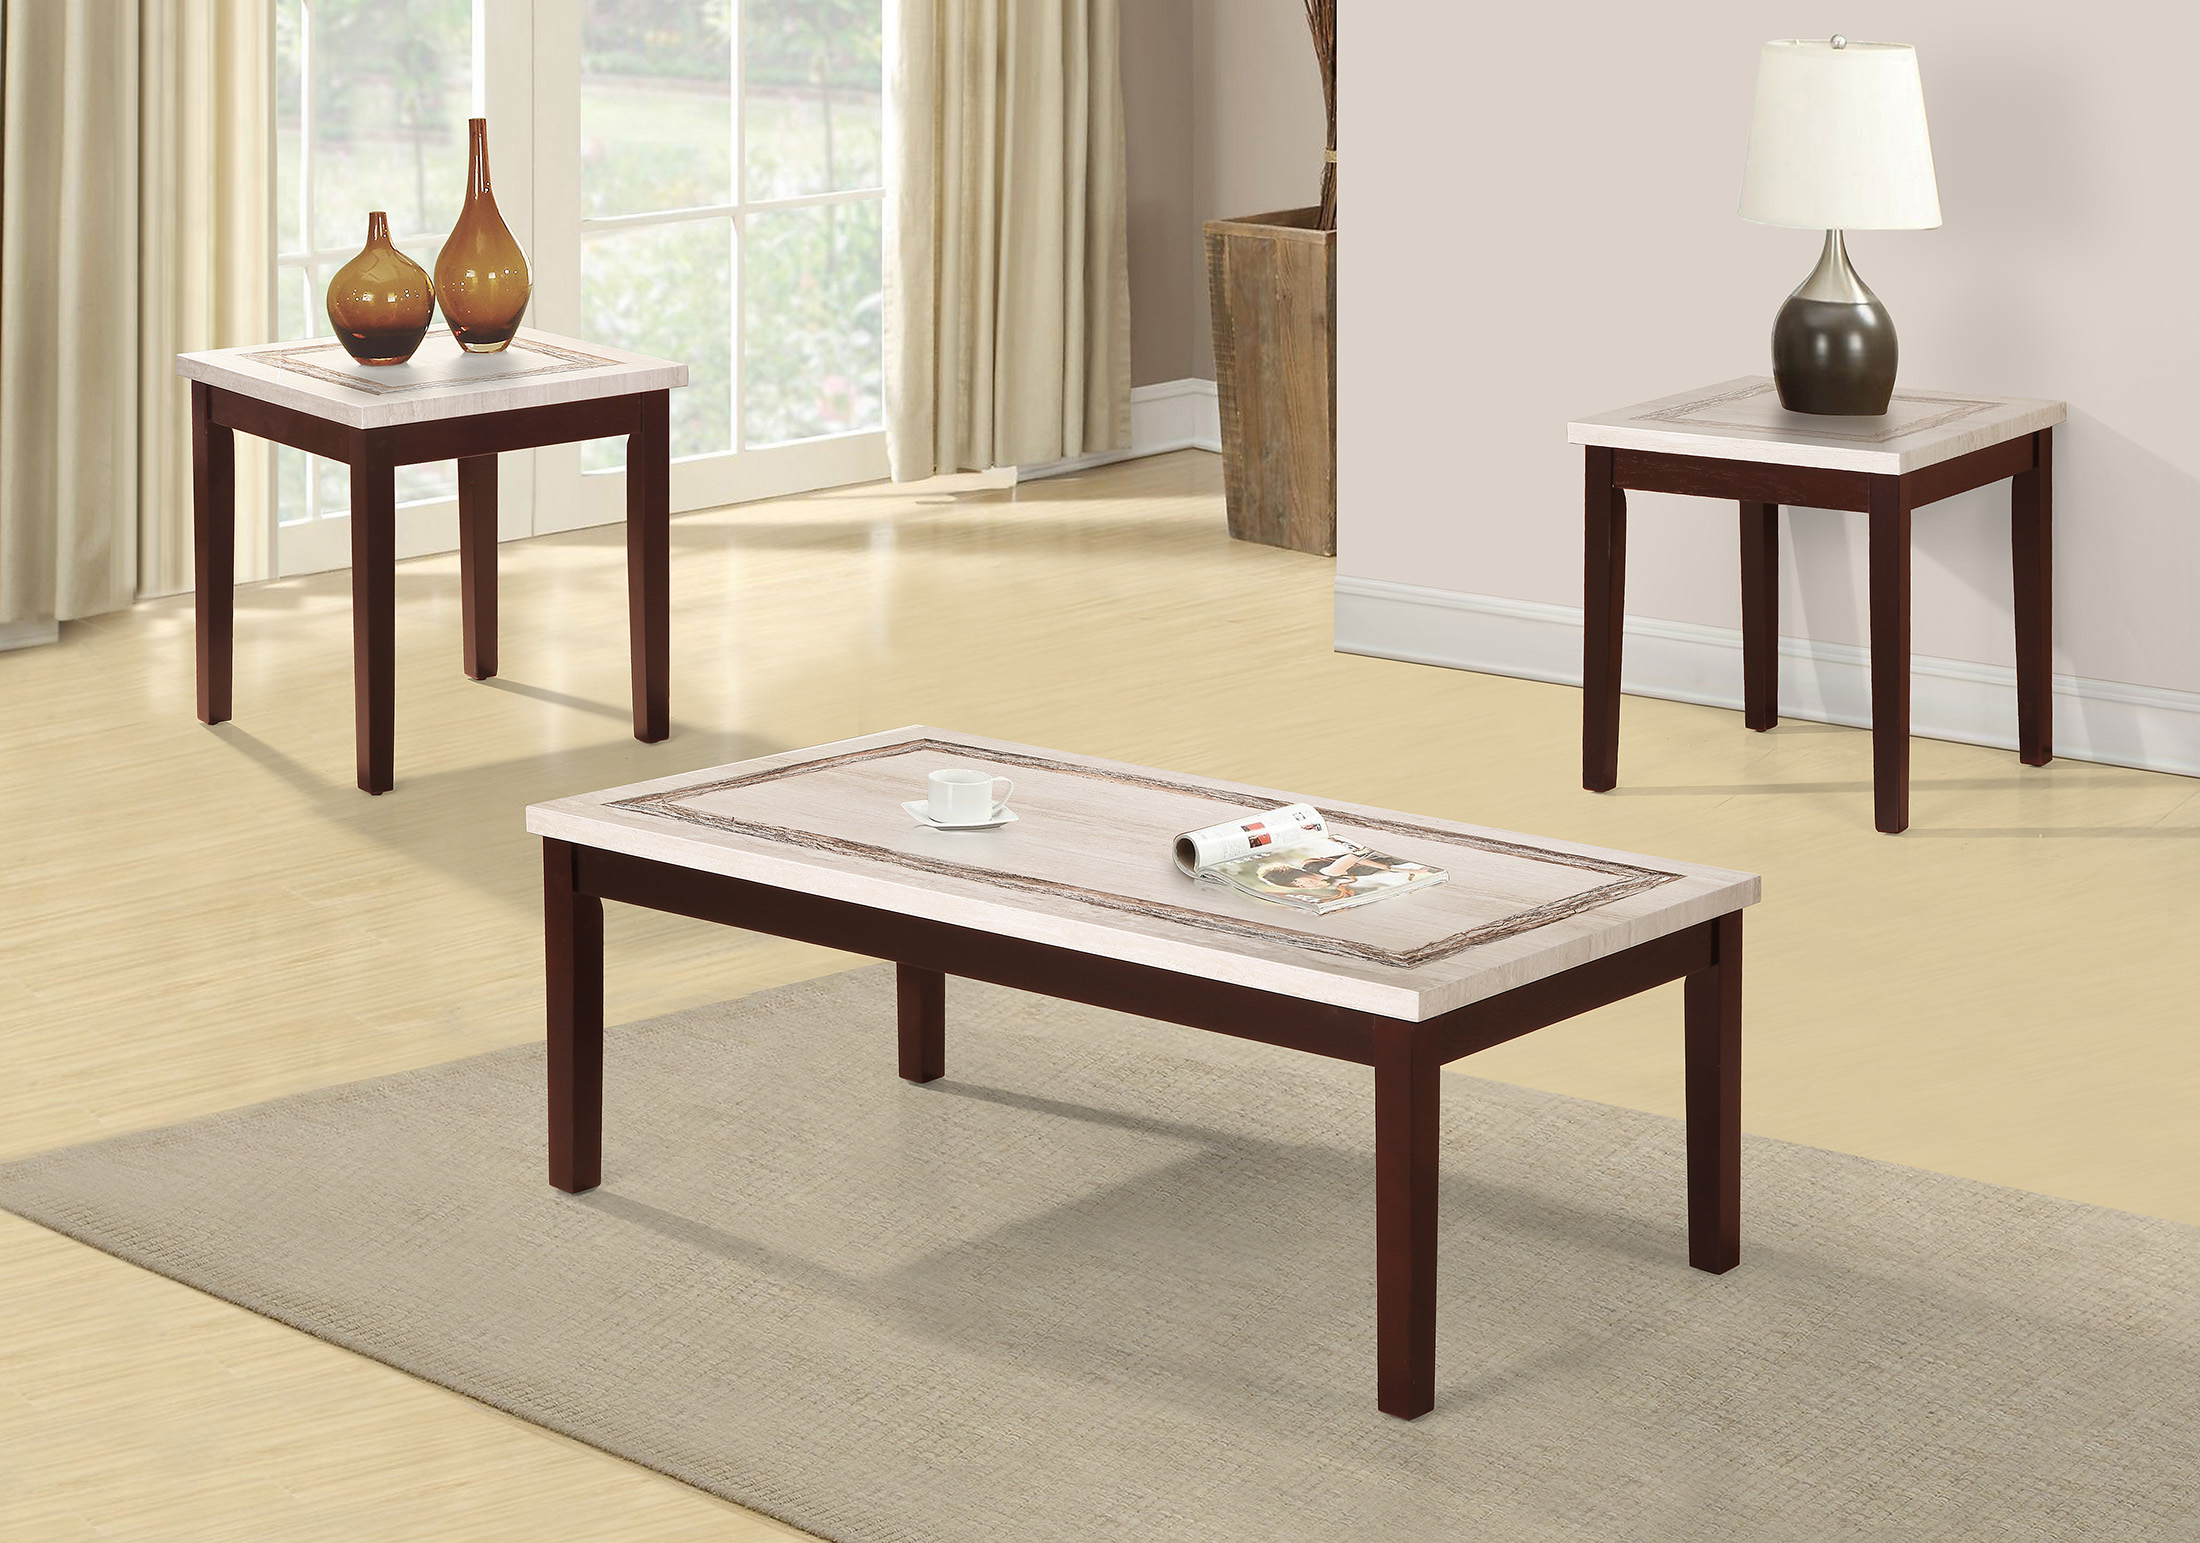 ivory knox faux granite end table sets accent long thin ikea height dining set room plans kidney shaped cocktail pub with storage chinese style lamp shades inch console round